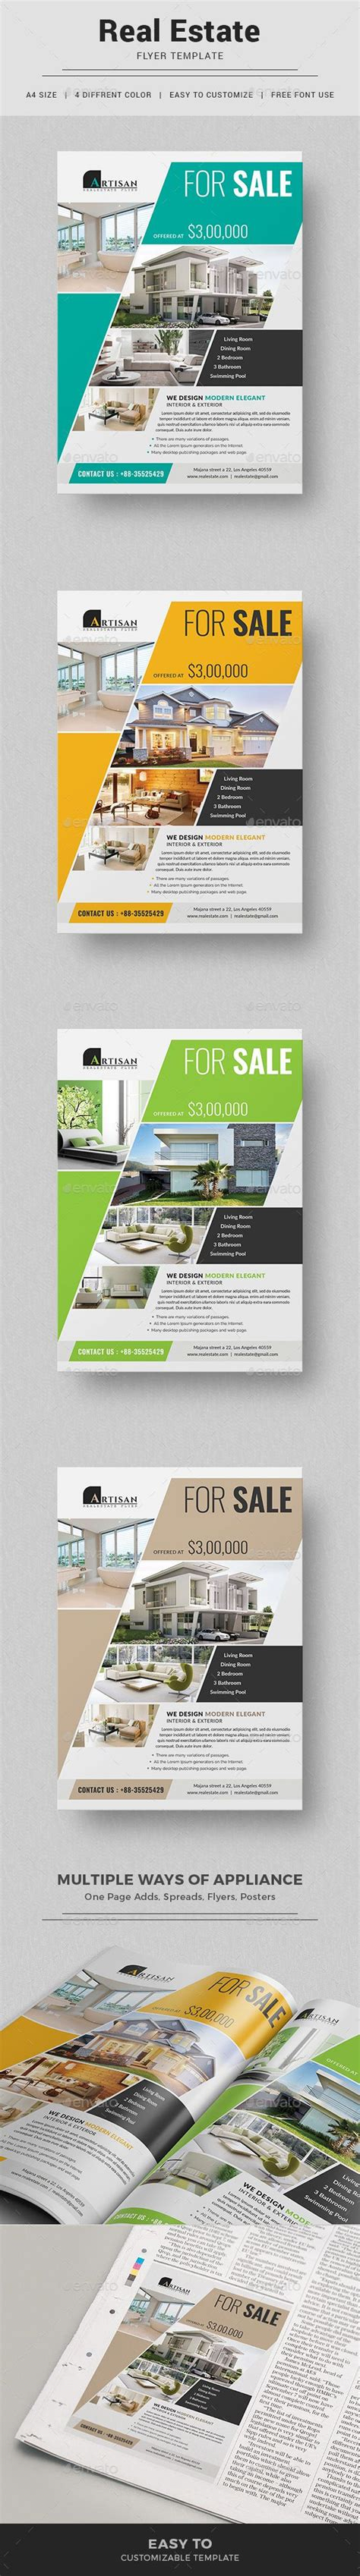 layout flyer tips 25 best ideas about real estate flyers on pinterest